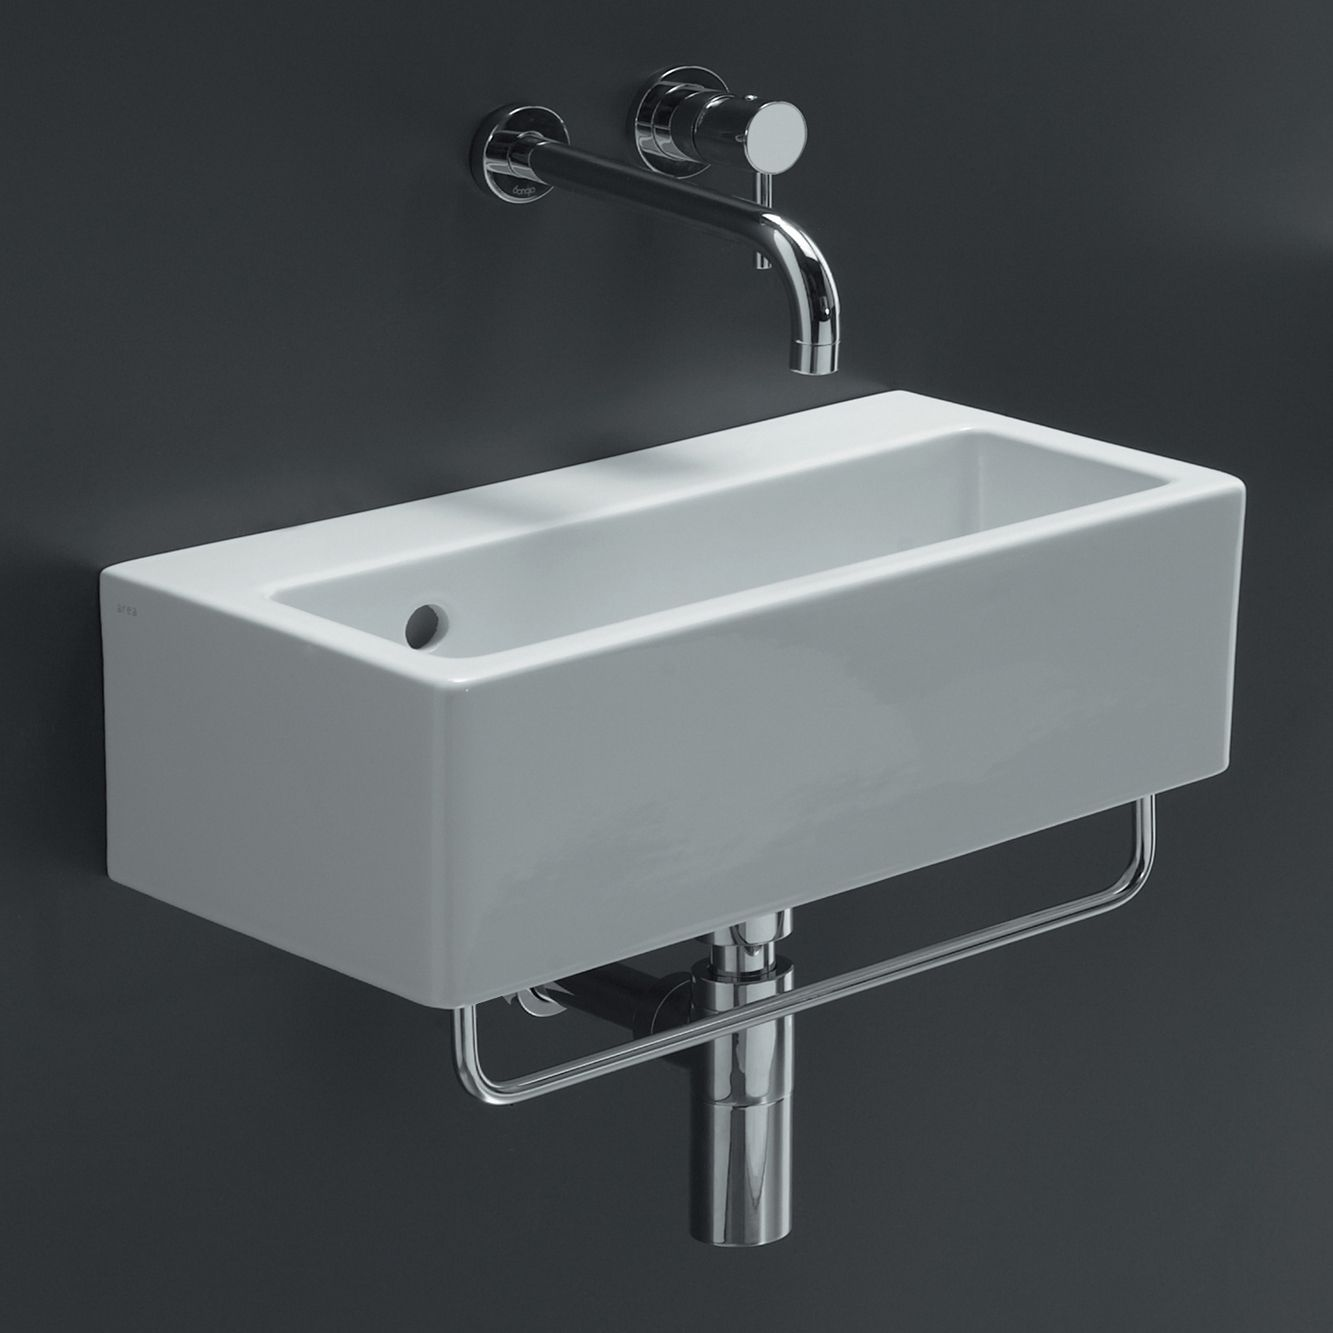 Simple Design Of The Wall Mounted Sink With Silver Faucets Ideas Put On The  Black Wall